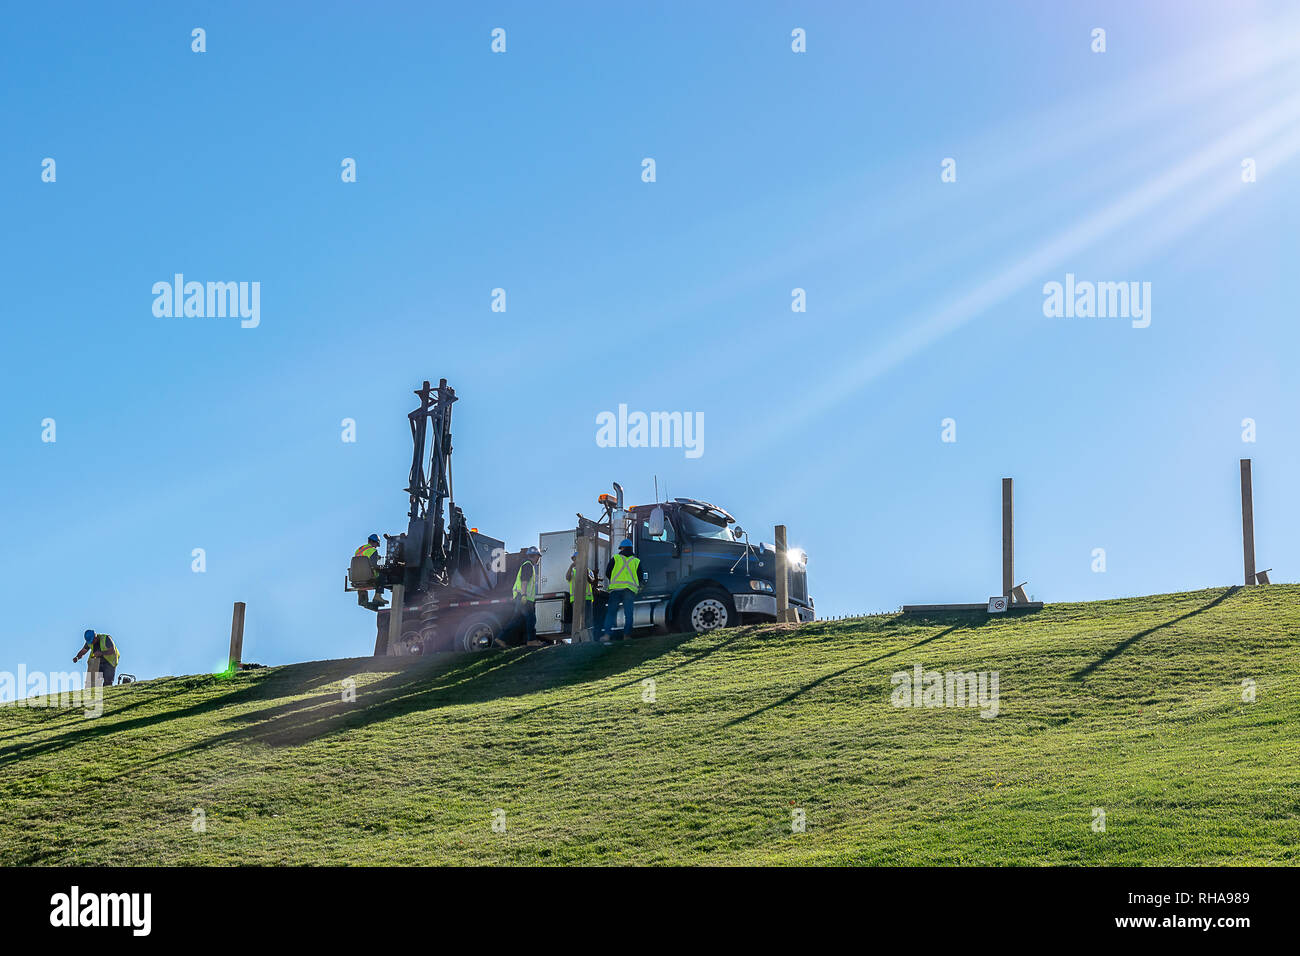 Caucasian male Engineers working and operating a hydraulic telescopic truck mounted auger crane drill rig on a hill on a sunny day. - Stock Image